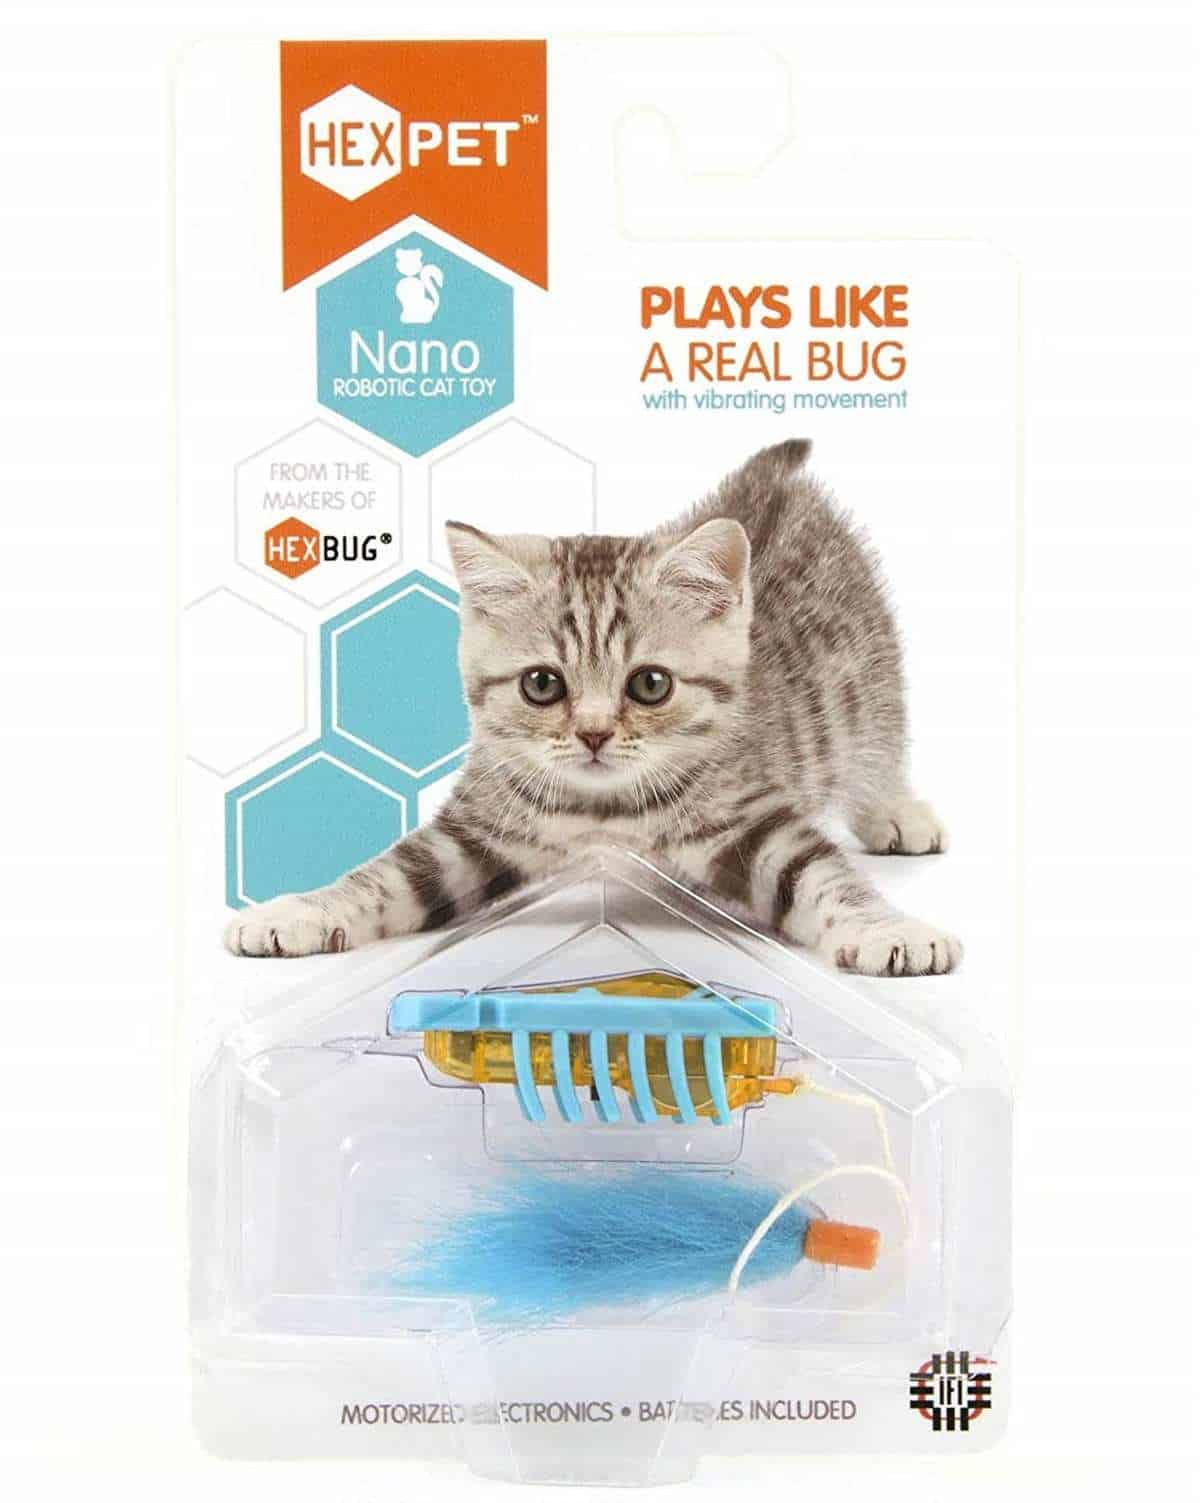 Hexbug Nano | Tech-Forward Pet Accessories To Share With Your Furry Friend